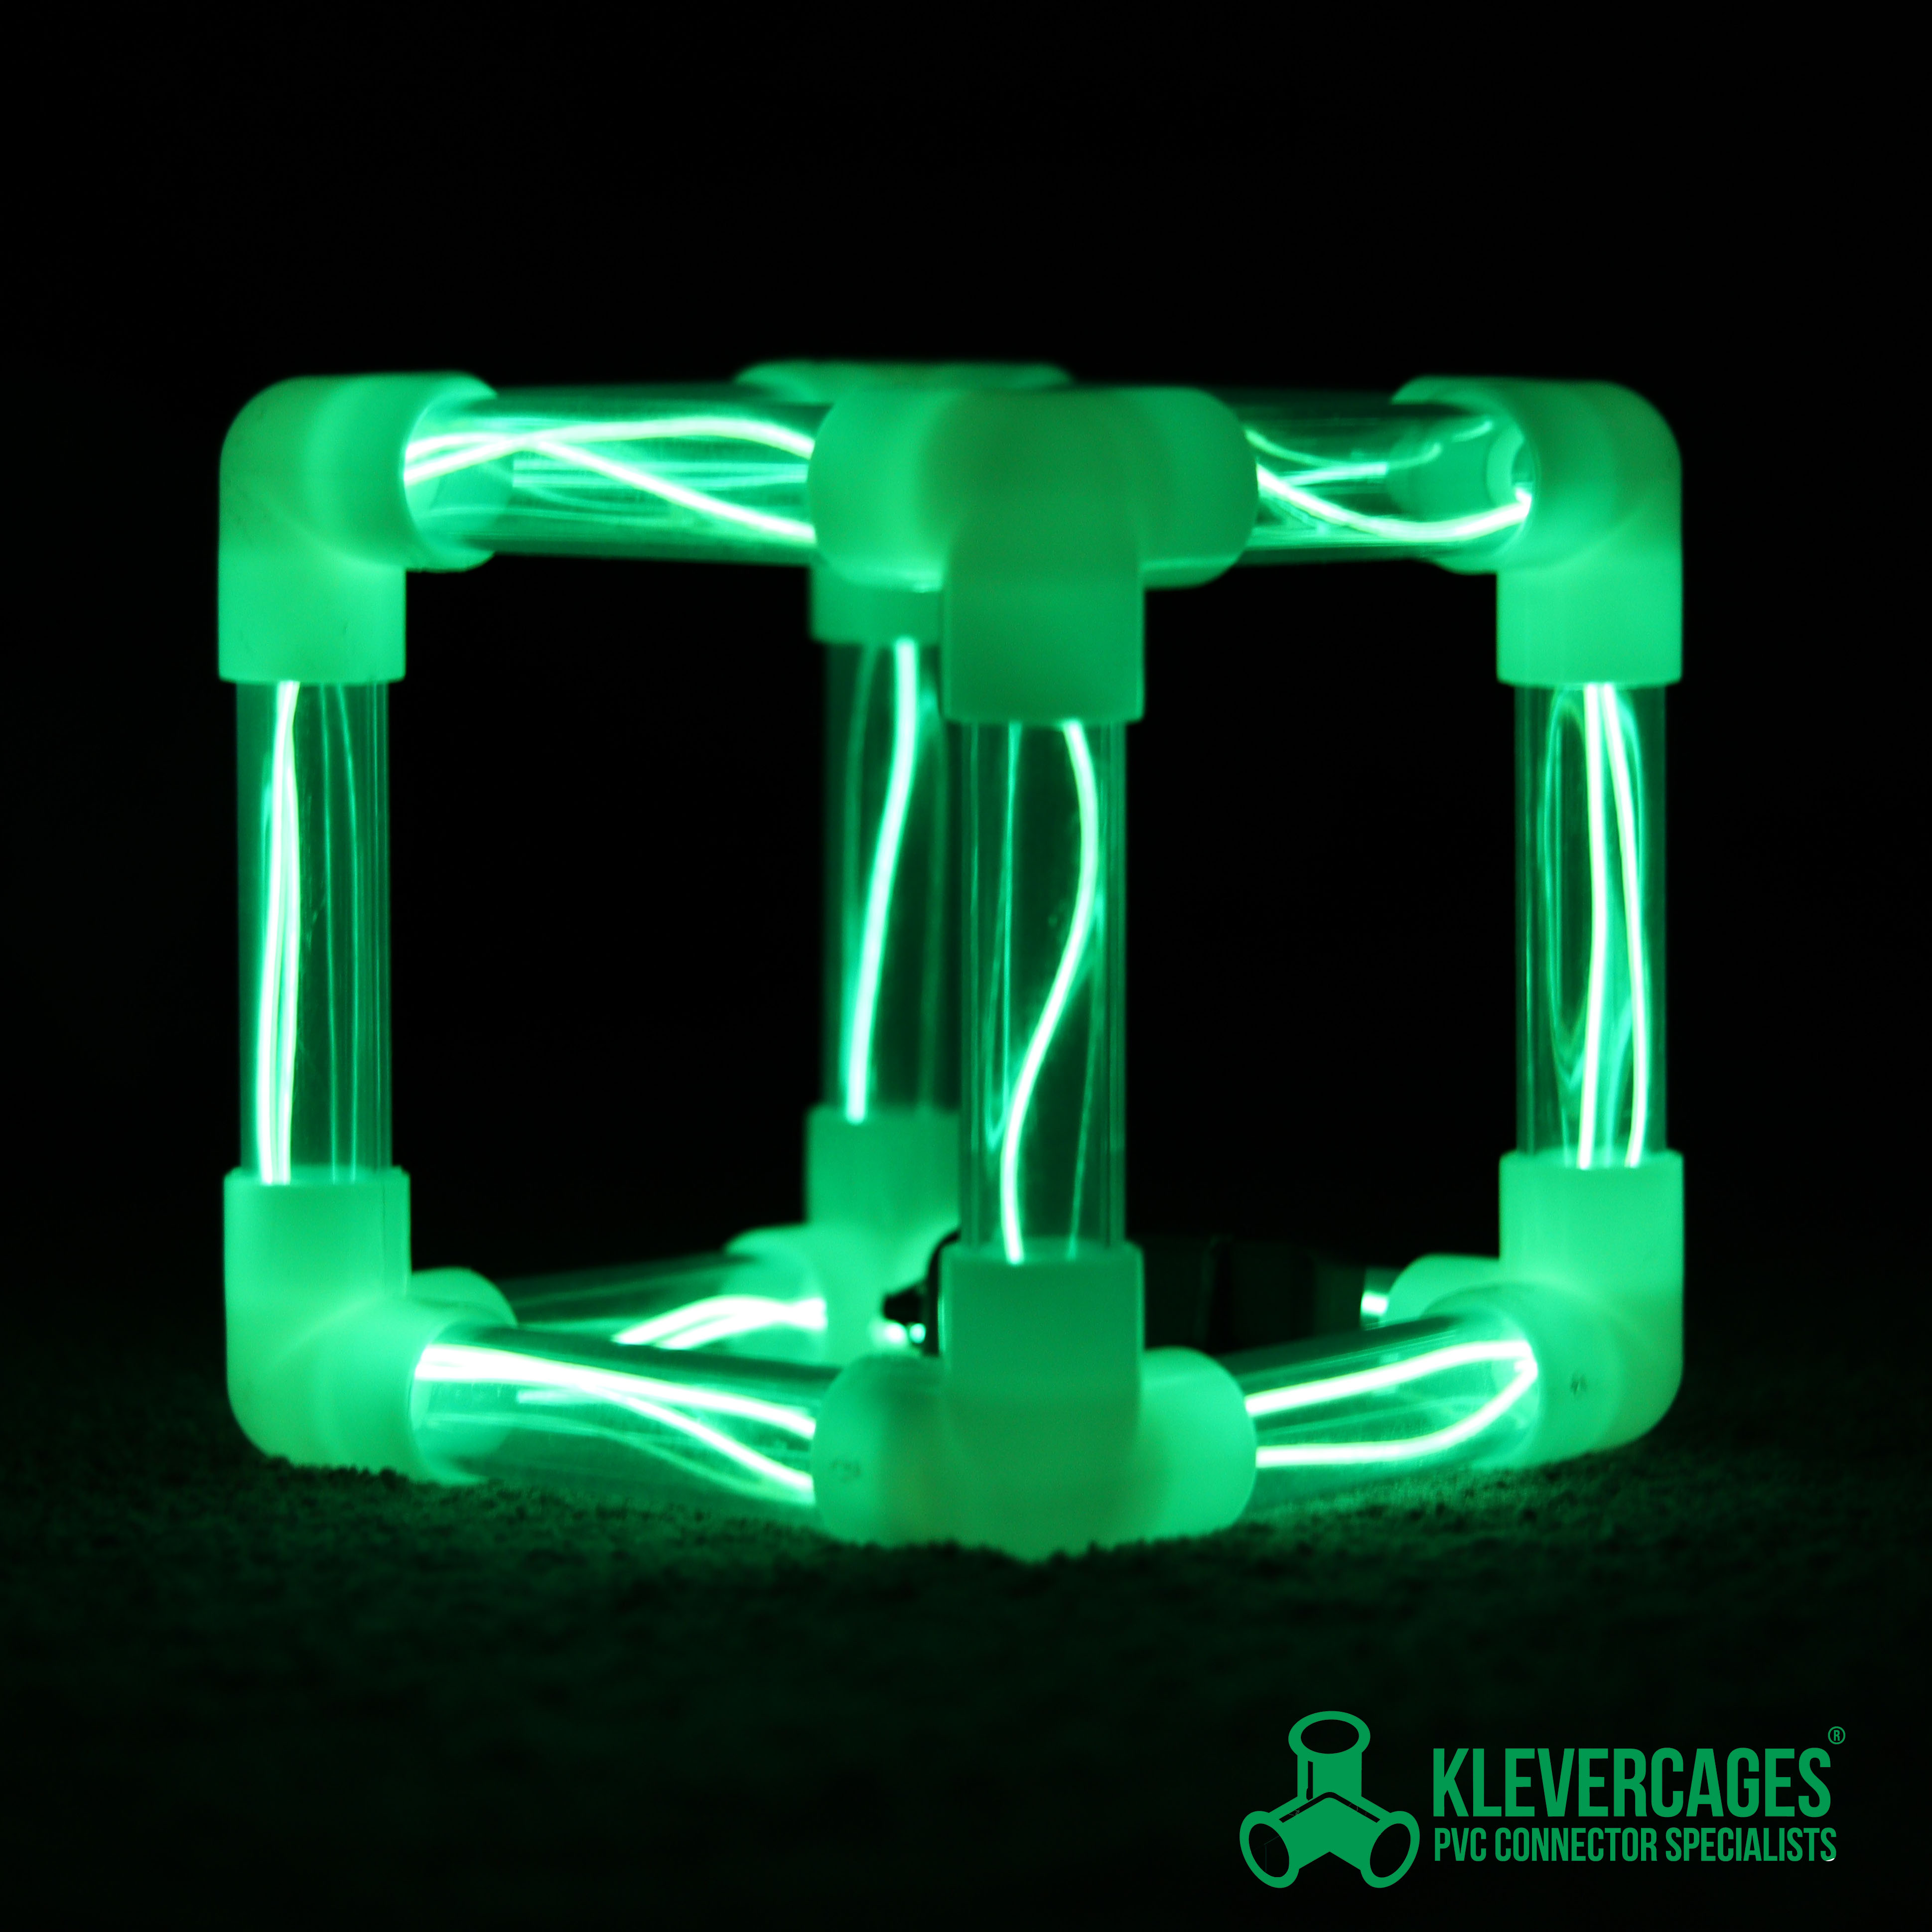 Glow in the dark 3 way elbow connector fittings with led lights in clear PVC pipe from Klever Cages